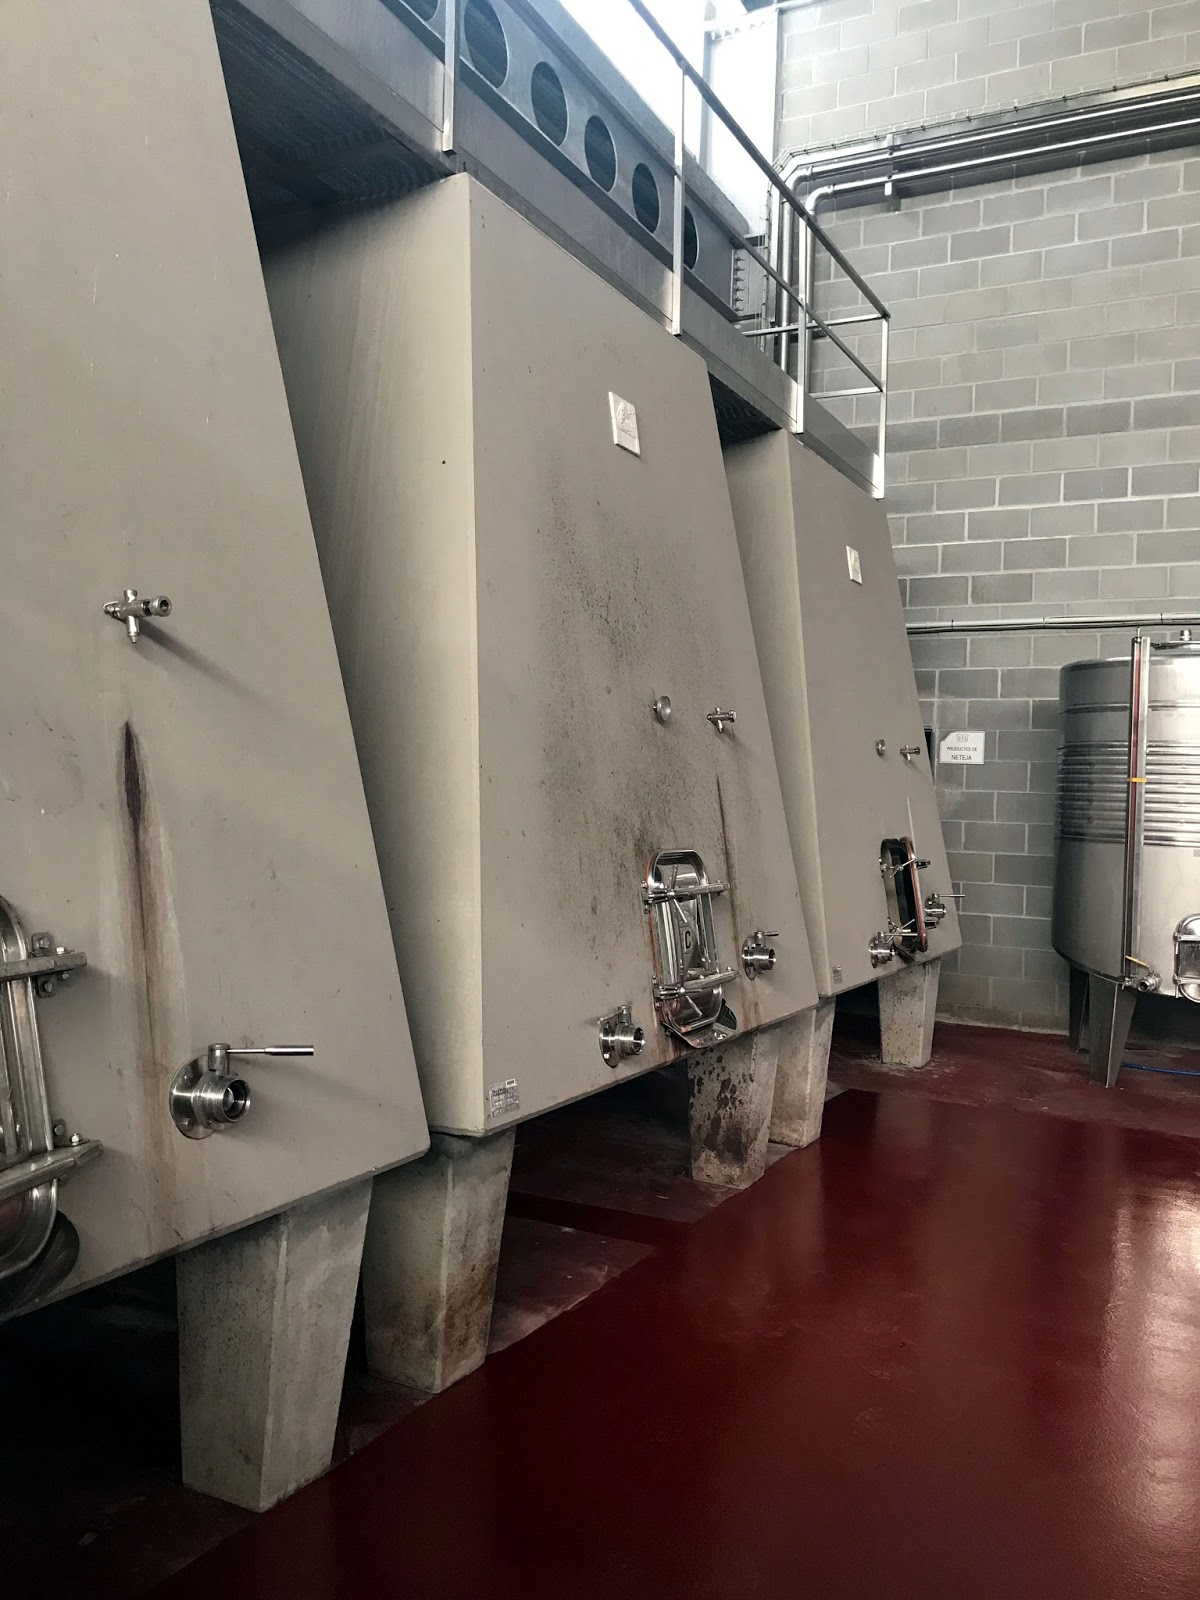 Stitch & Bear - Torres Priorat - Concrete winemaking tanks